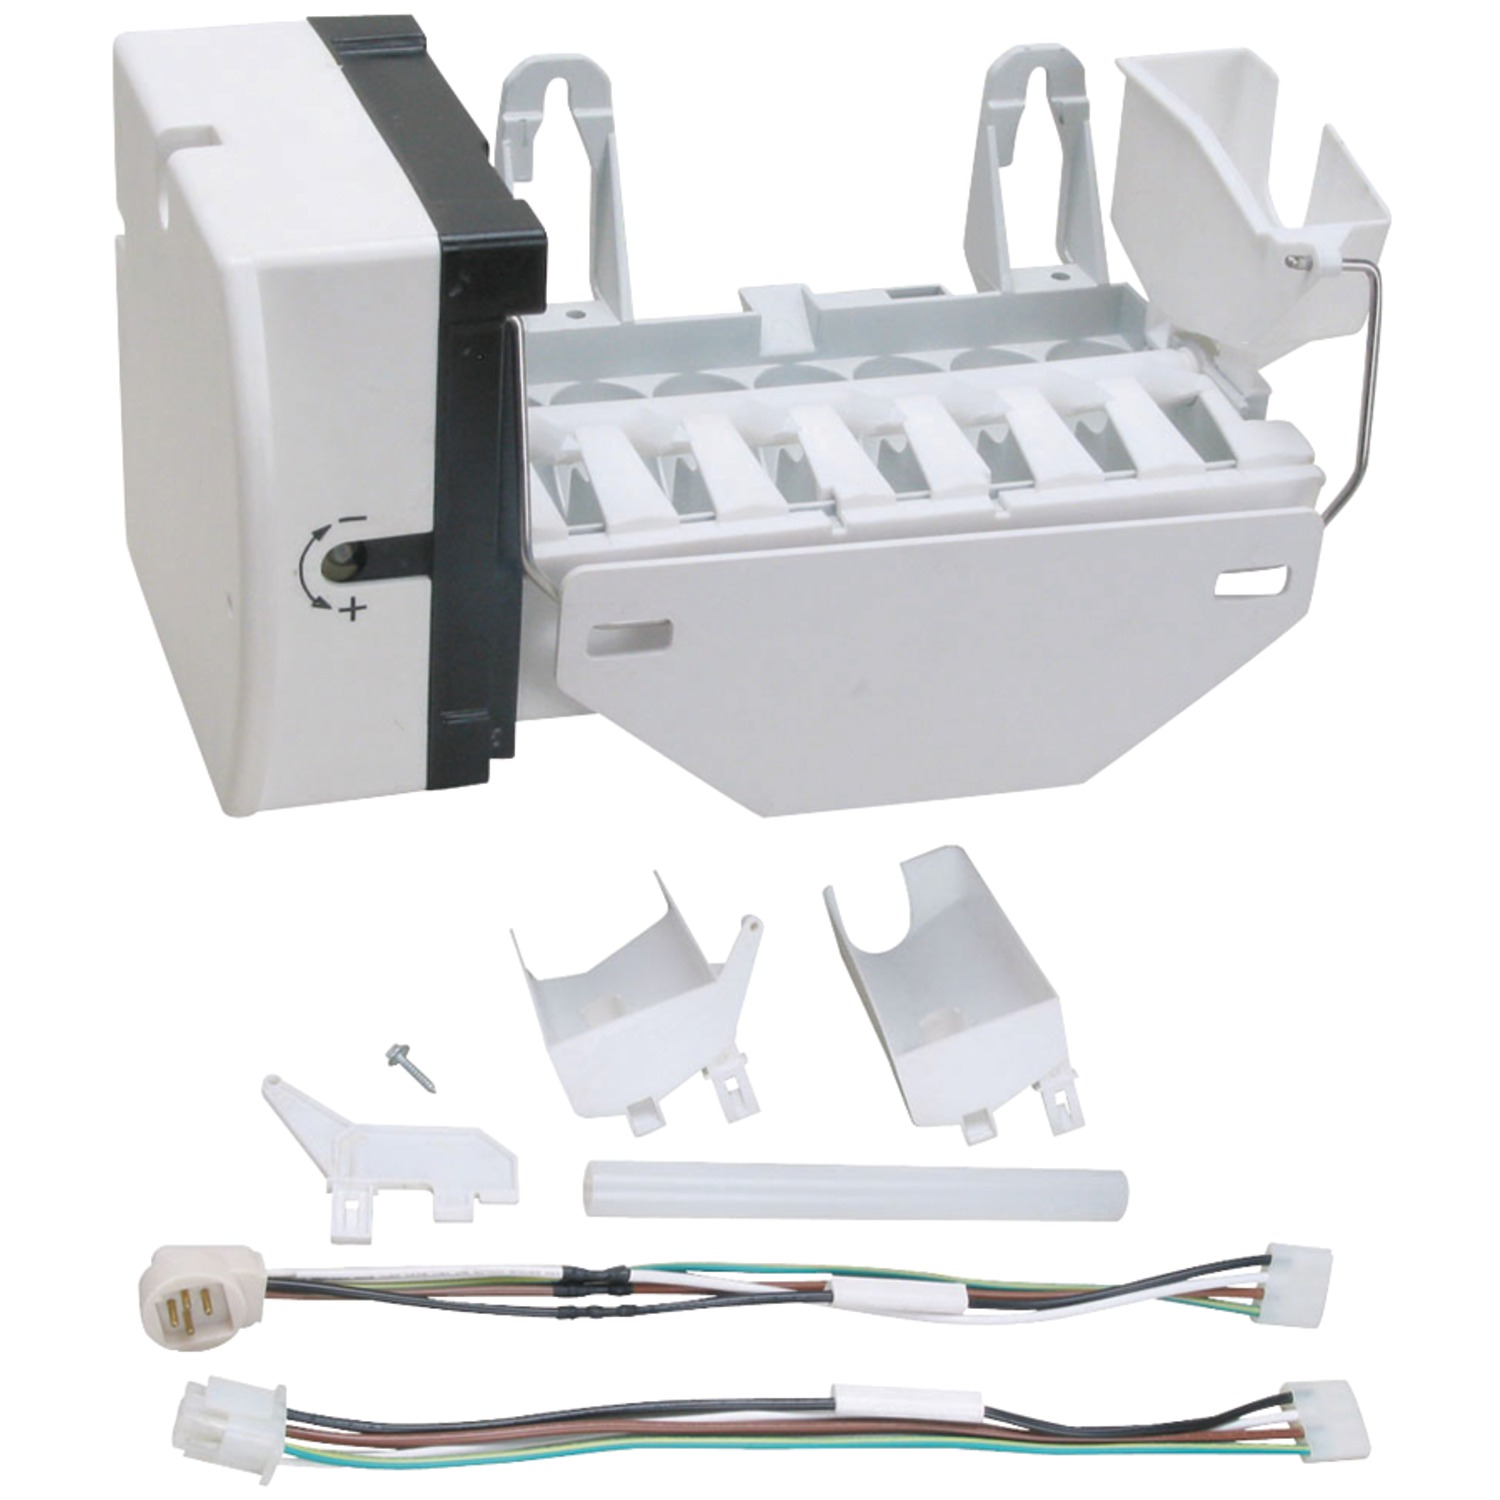 Exact Replacement Parts WR30X10093 Ice Maker with Harness for GE® WR30X10093